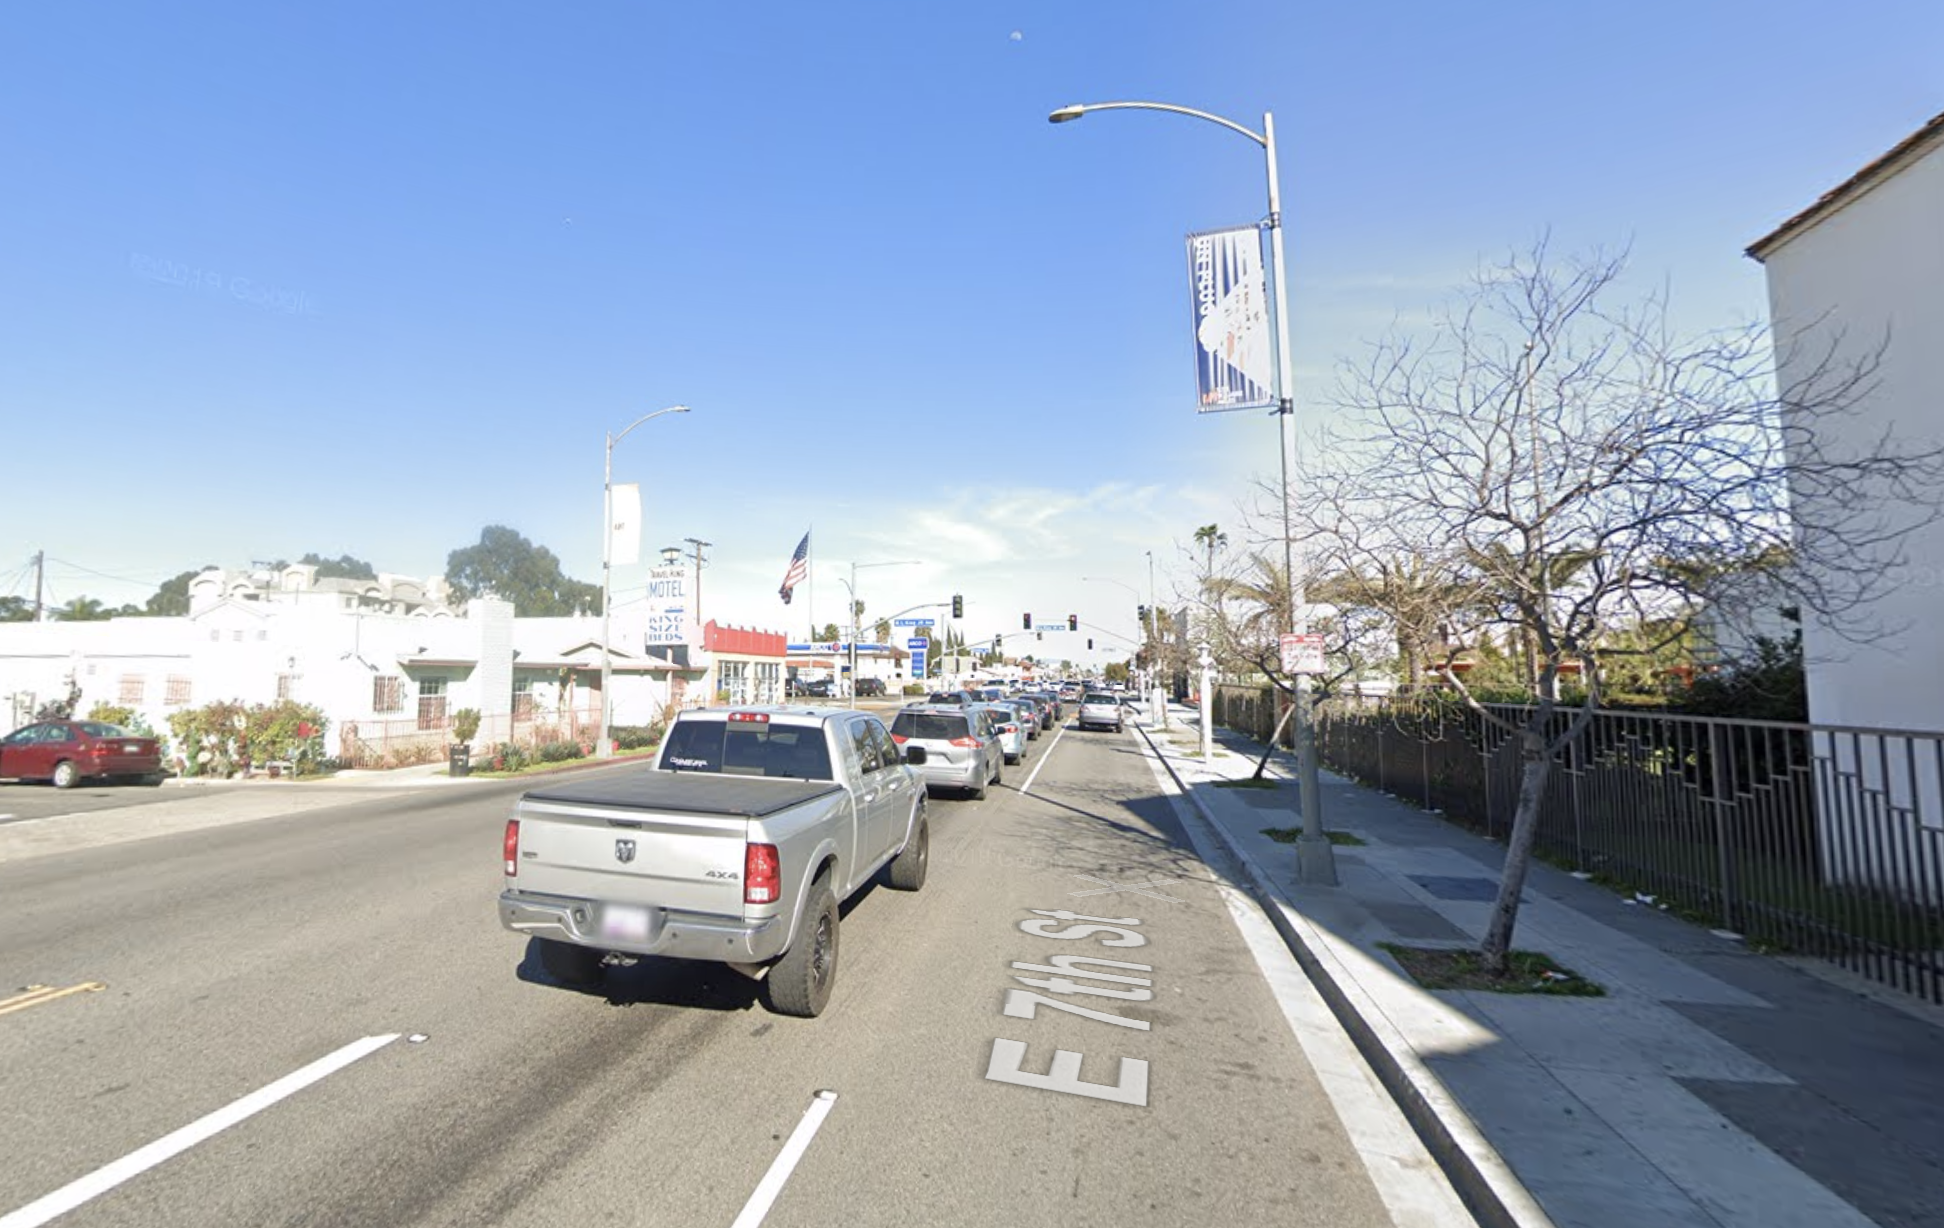 The 800 block of East 7th Street in Long Beach appears in this image from Google Maps.